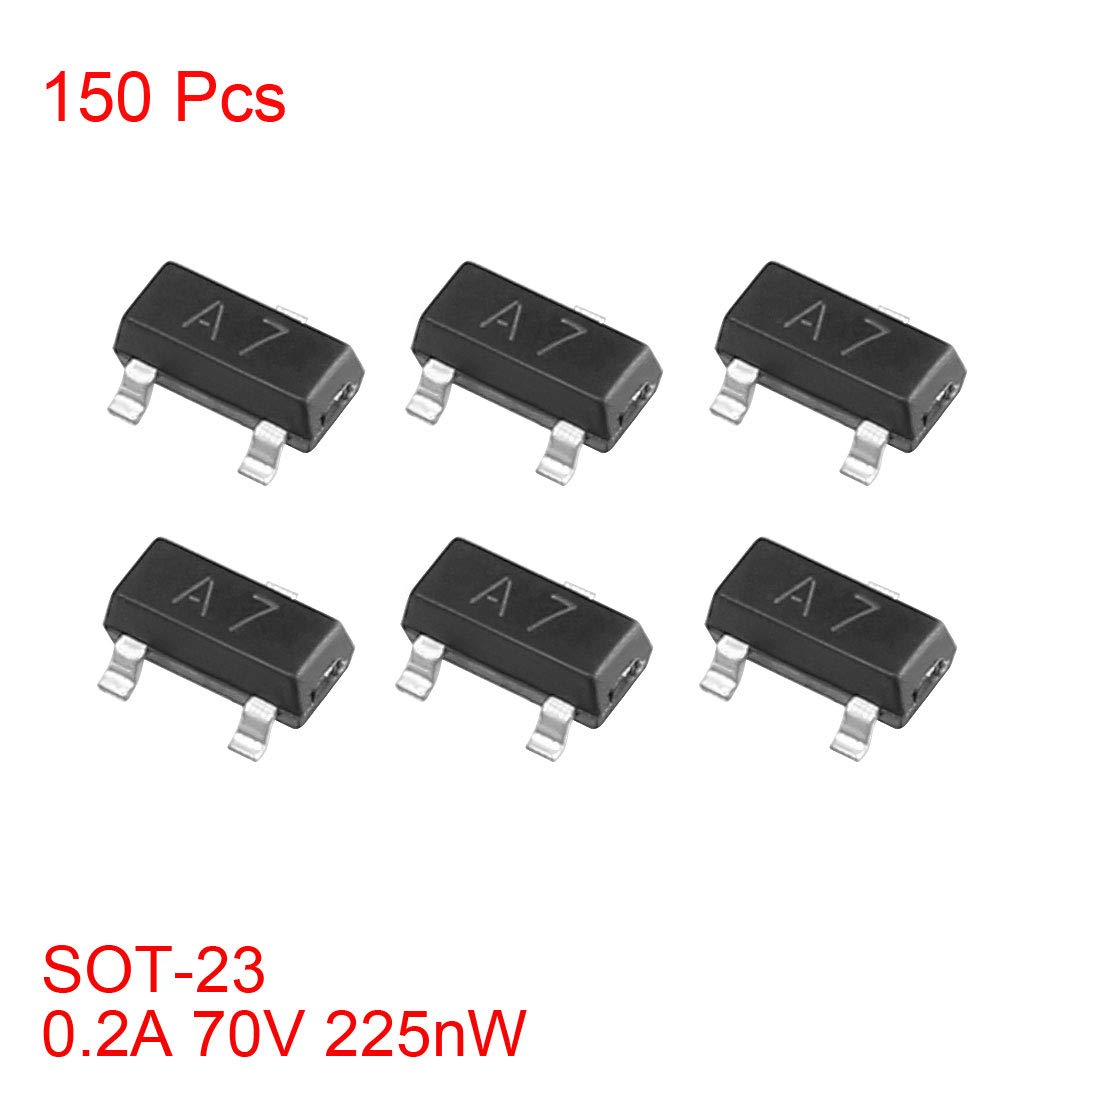 uxcell 150pcs SMD Small Signal High-Speed Switching Recrifiers Diode 0.2A 71V 225nW SOT-23,Ifm=100mA